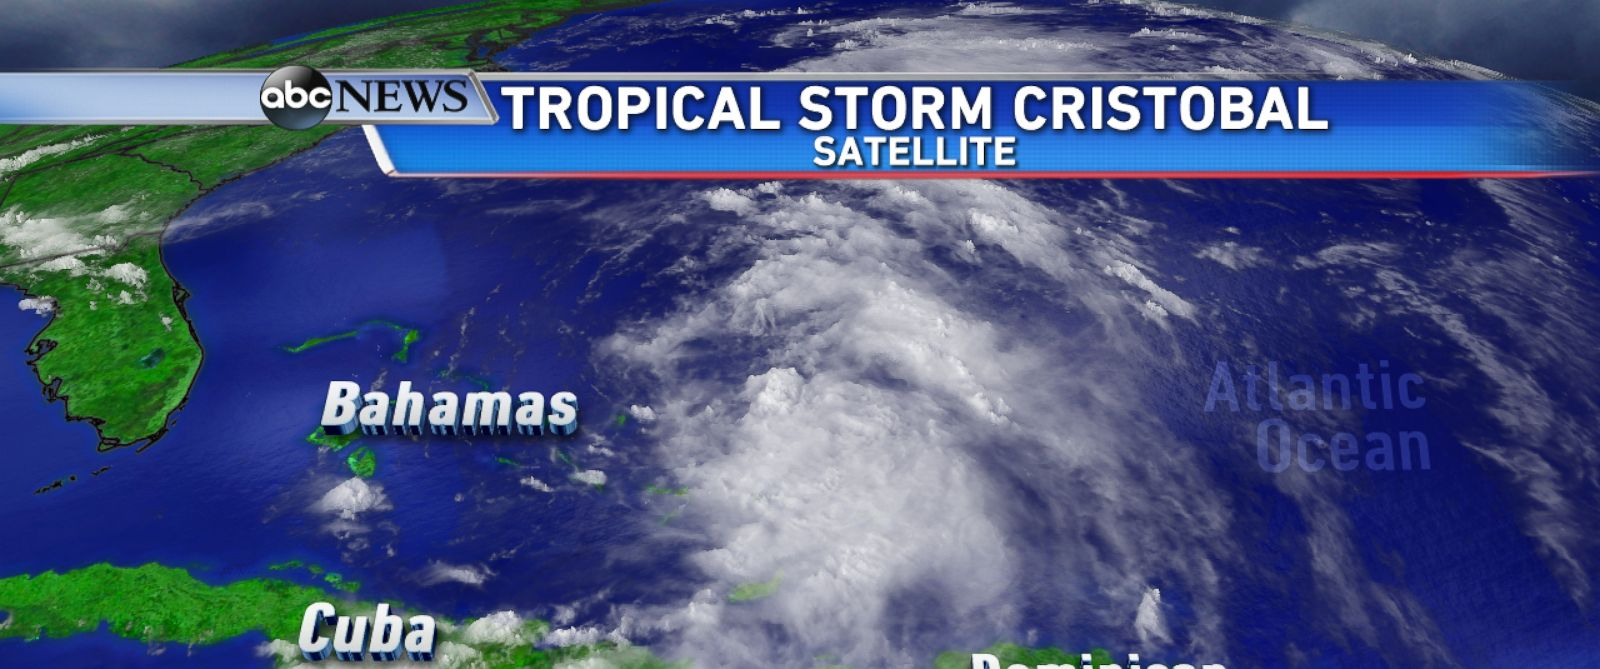 PHOTO: Satellite view of Tropical Storm Cristobal as it churns in the Atlantic.